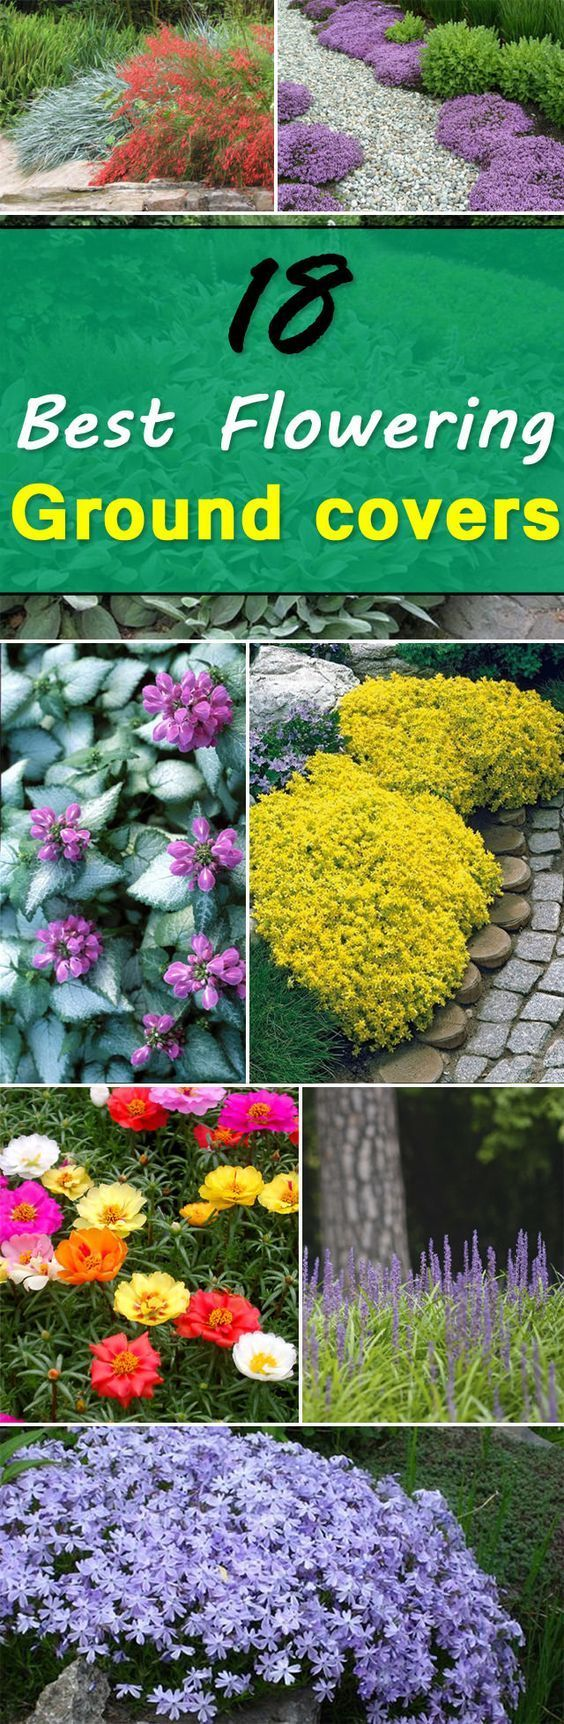 1000 ideas about flowers garden on pinterest flower gardening colorful flowers and spring plants. Black Bedroom Furniture Sets. Home Design Ideas